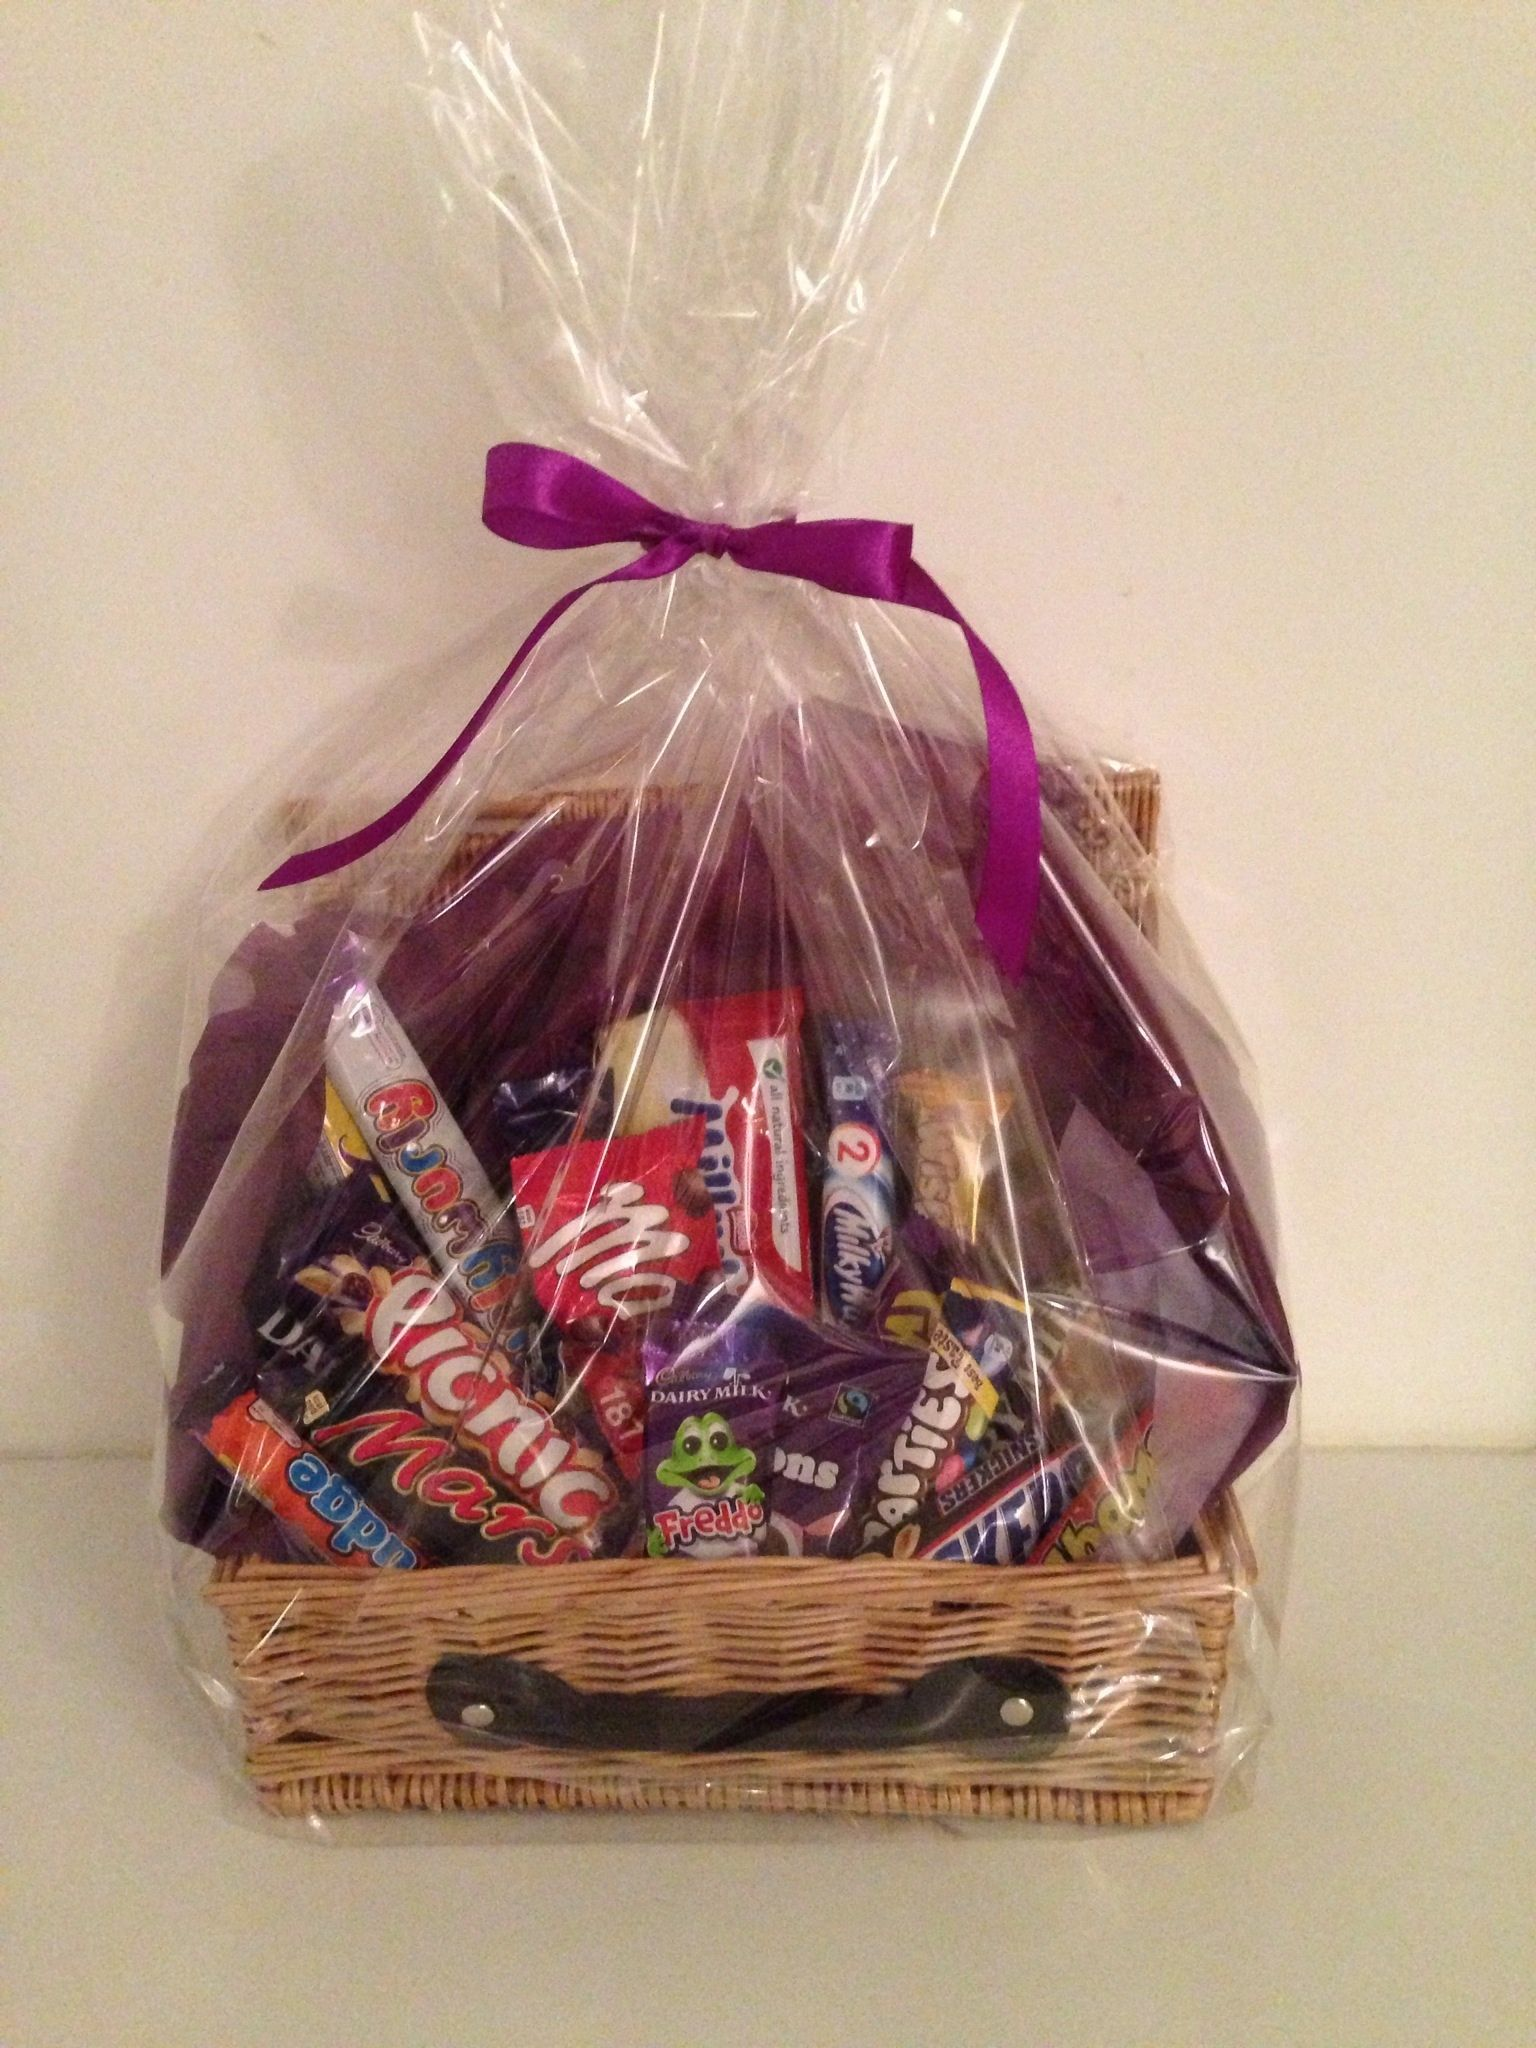 Christmas Hamper Basket.Chocolate Hamper 26 Gift Baskets Christmas Gifts For